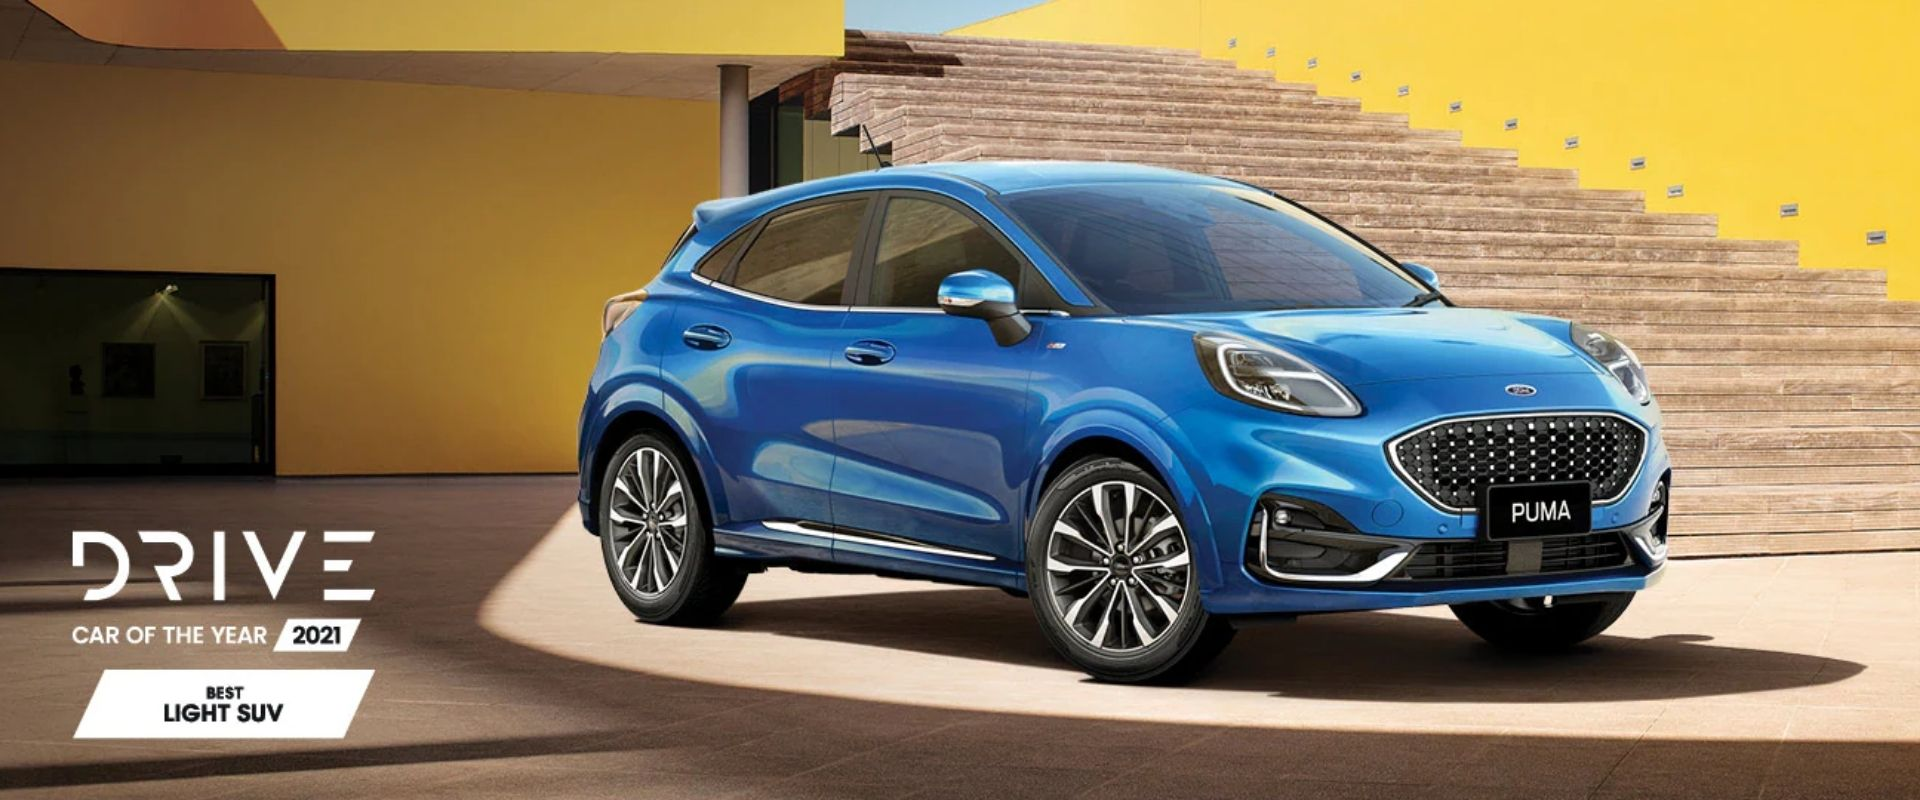 Ford Puma Wins Drive Car of the Year 2021 Award for Best Light SUV